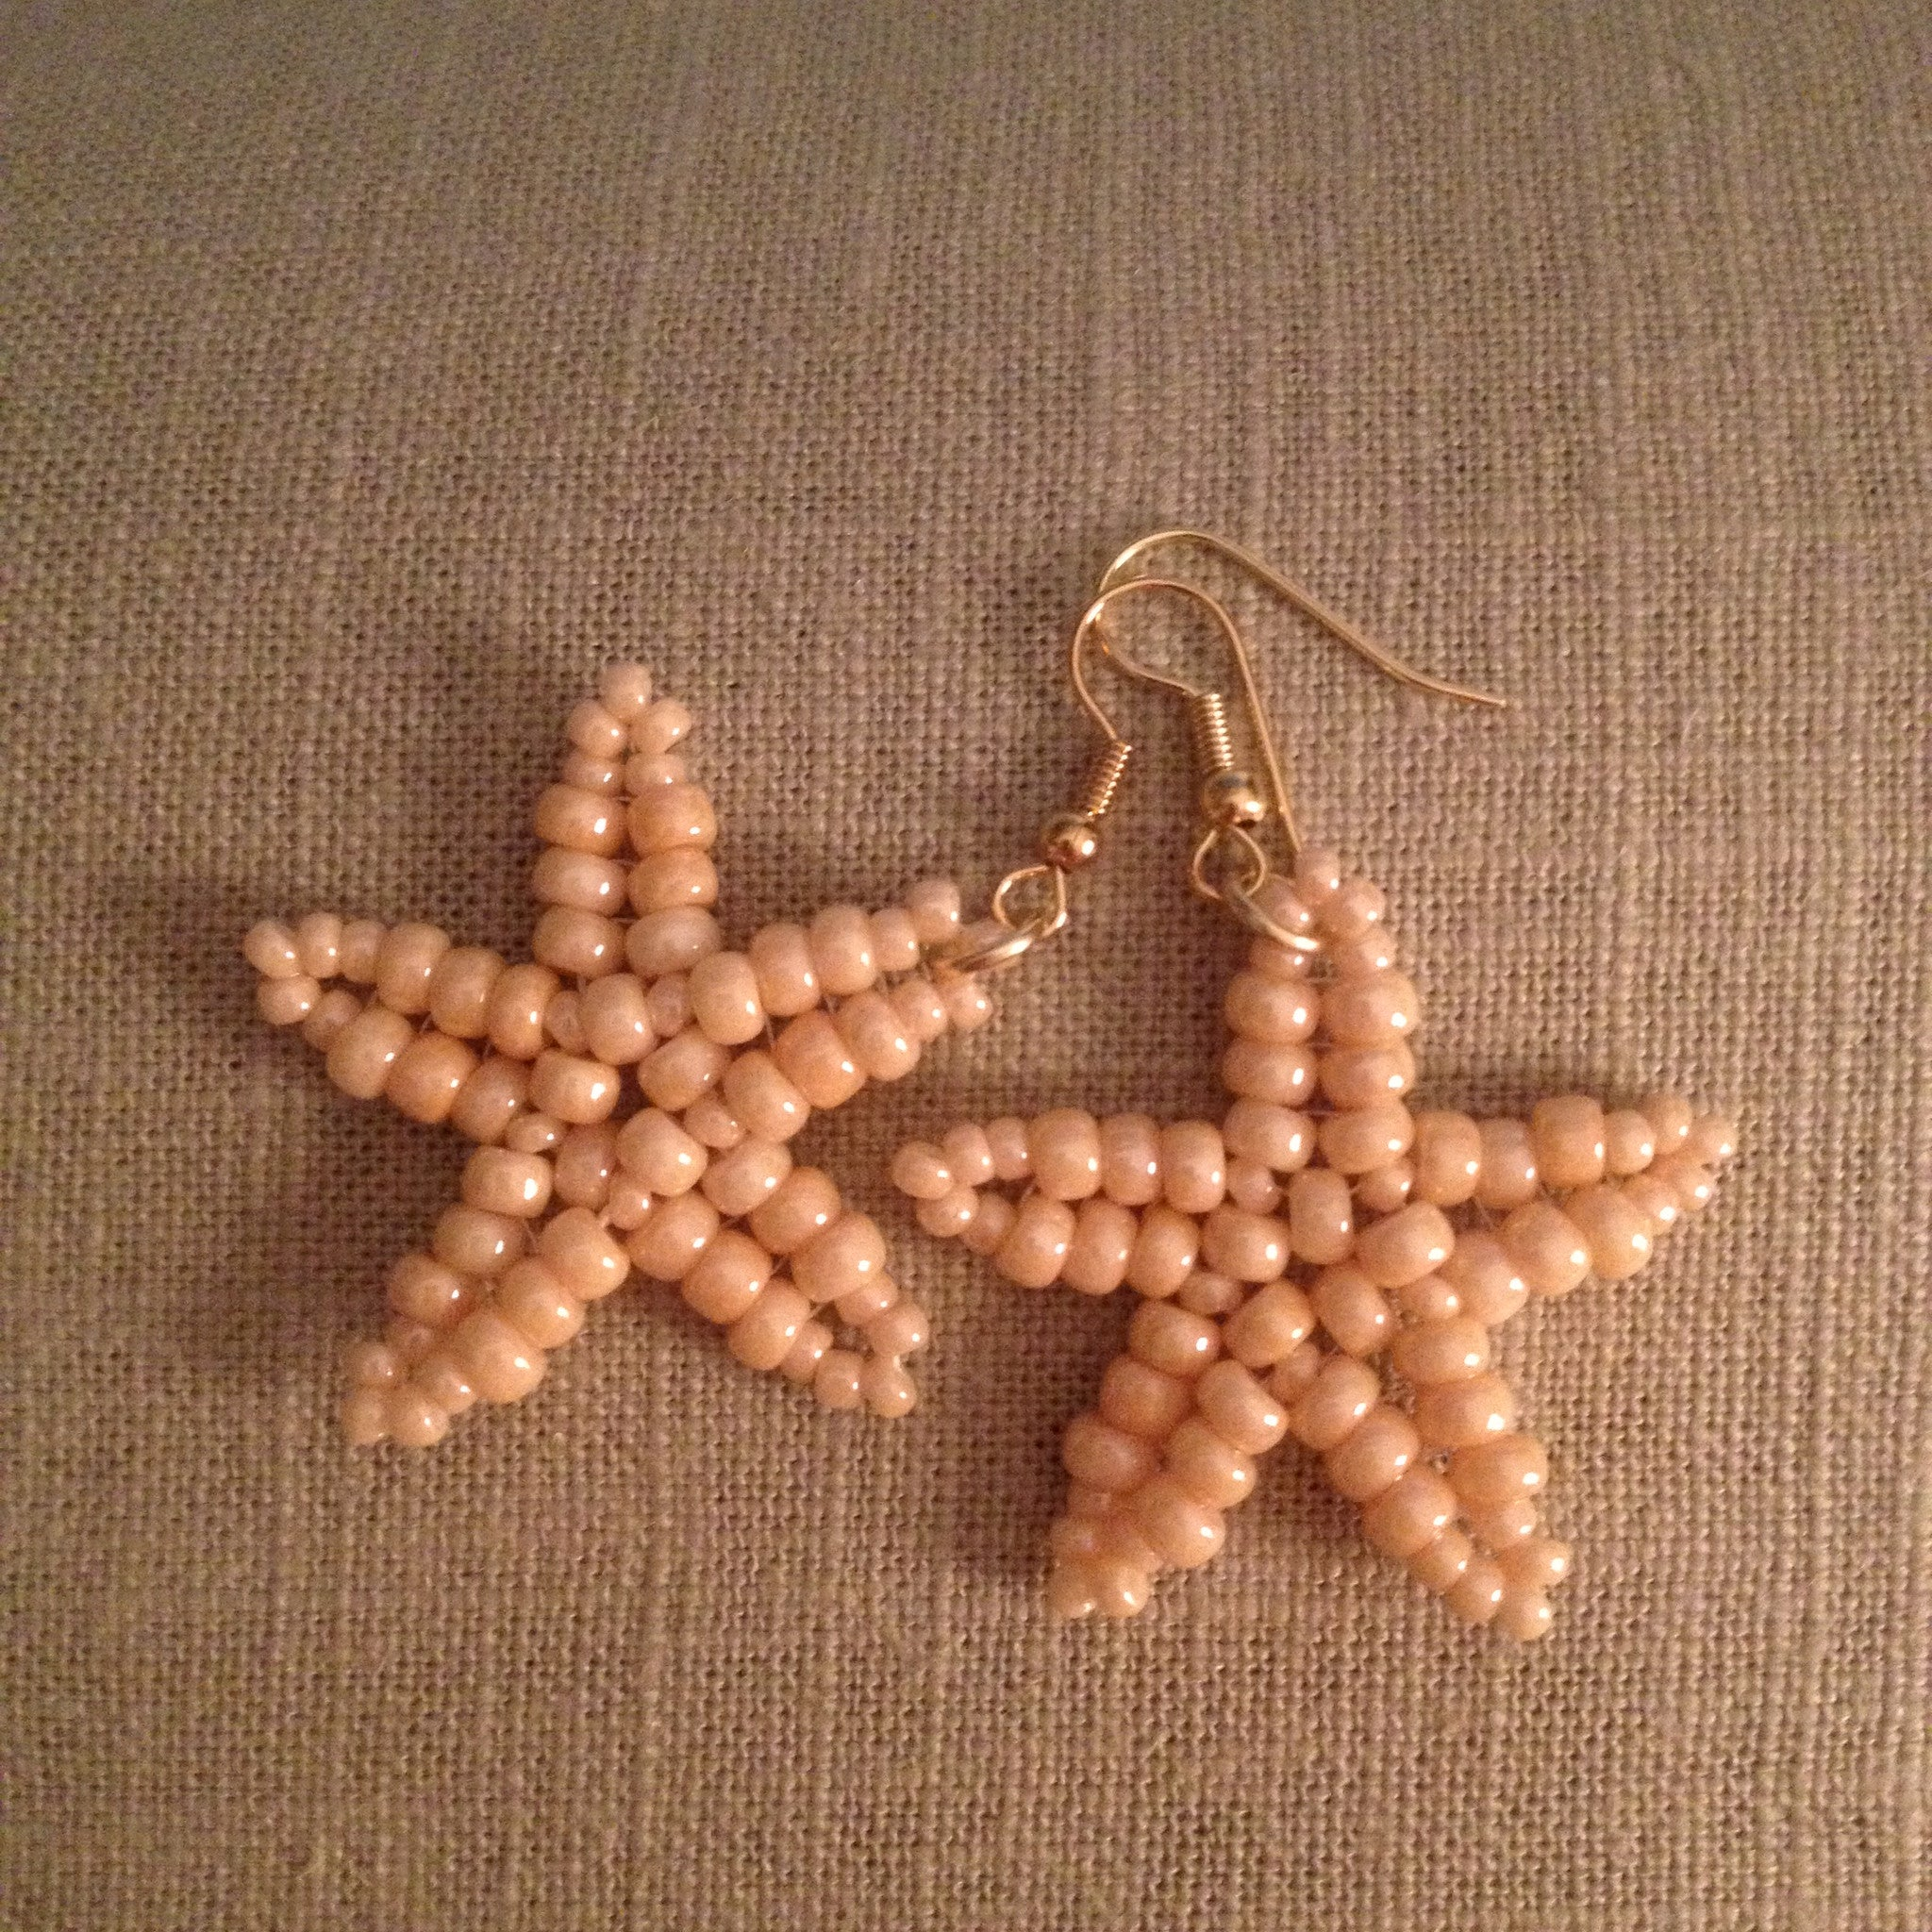 Starfish beaded handmade earrings in Creamy champagne beige resort cruise wear beachy fun